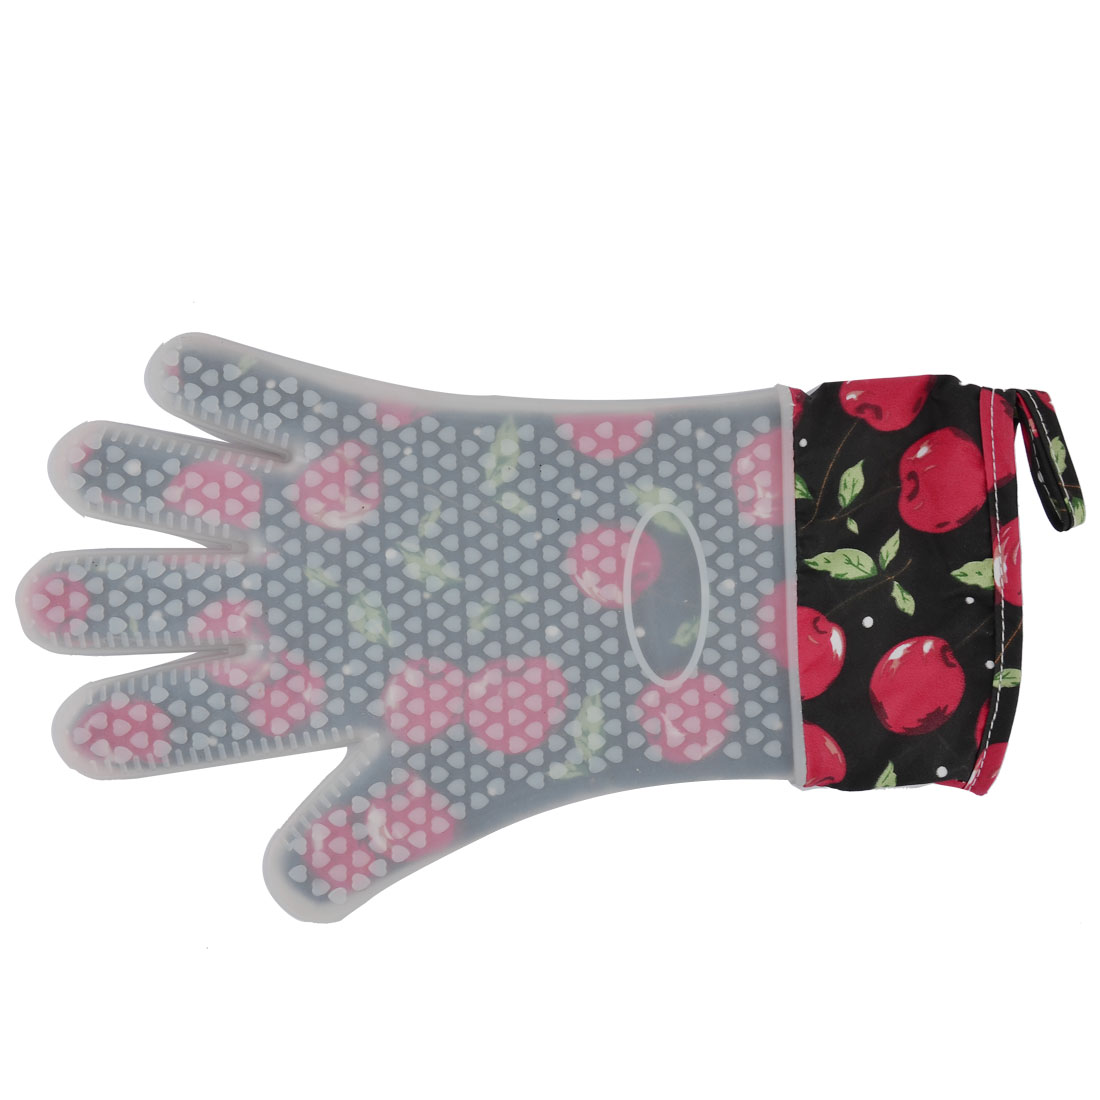 Silicone Cherry Pattern Cooking Baking Tool Heatproof Oven Mitt Glove Pad